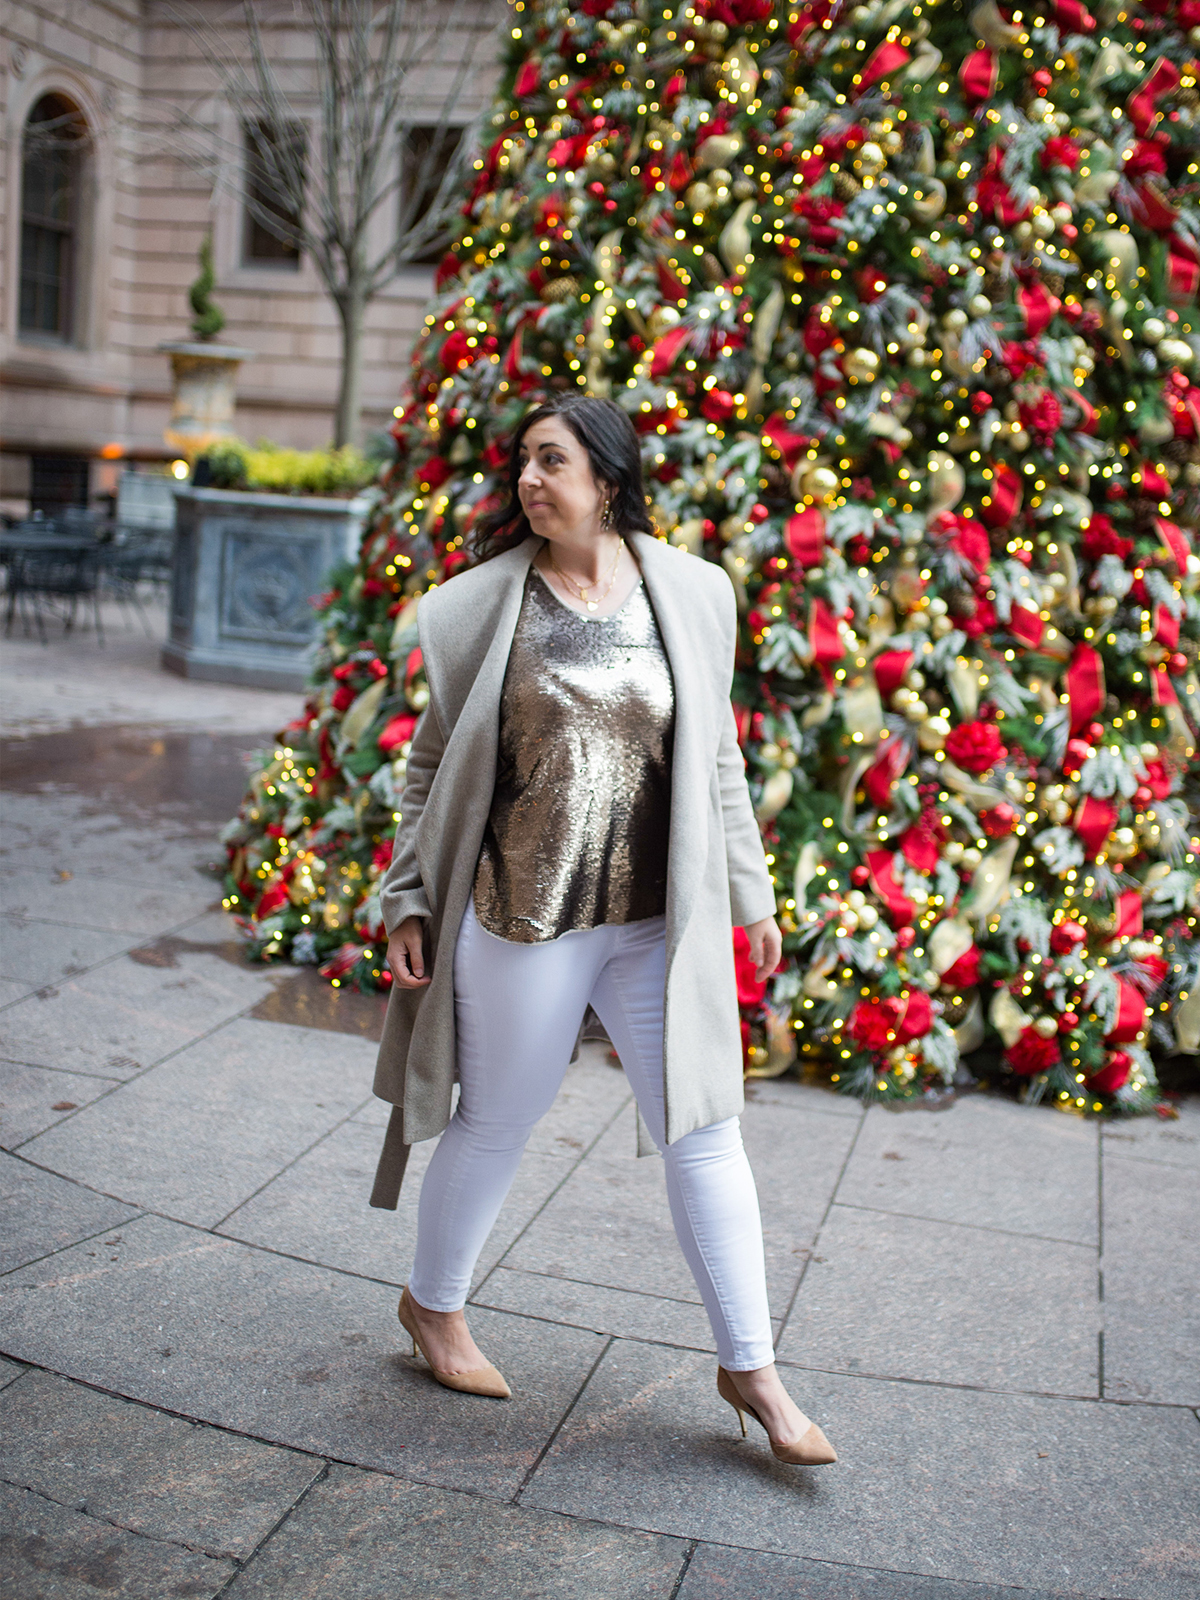 Merry Christmas 2018 :: Effortlessly with Roxy